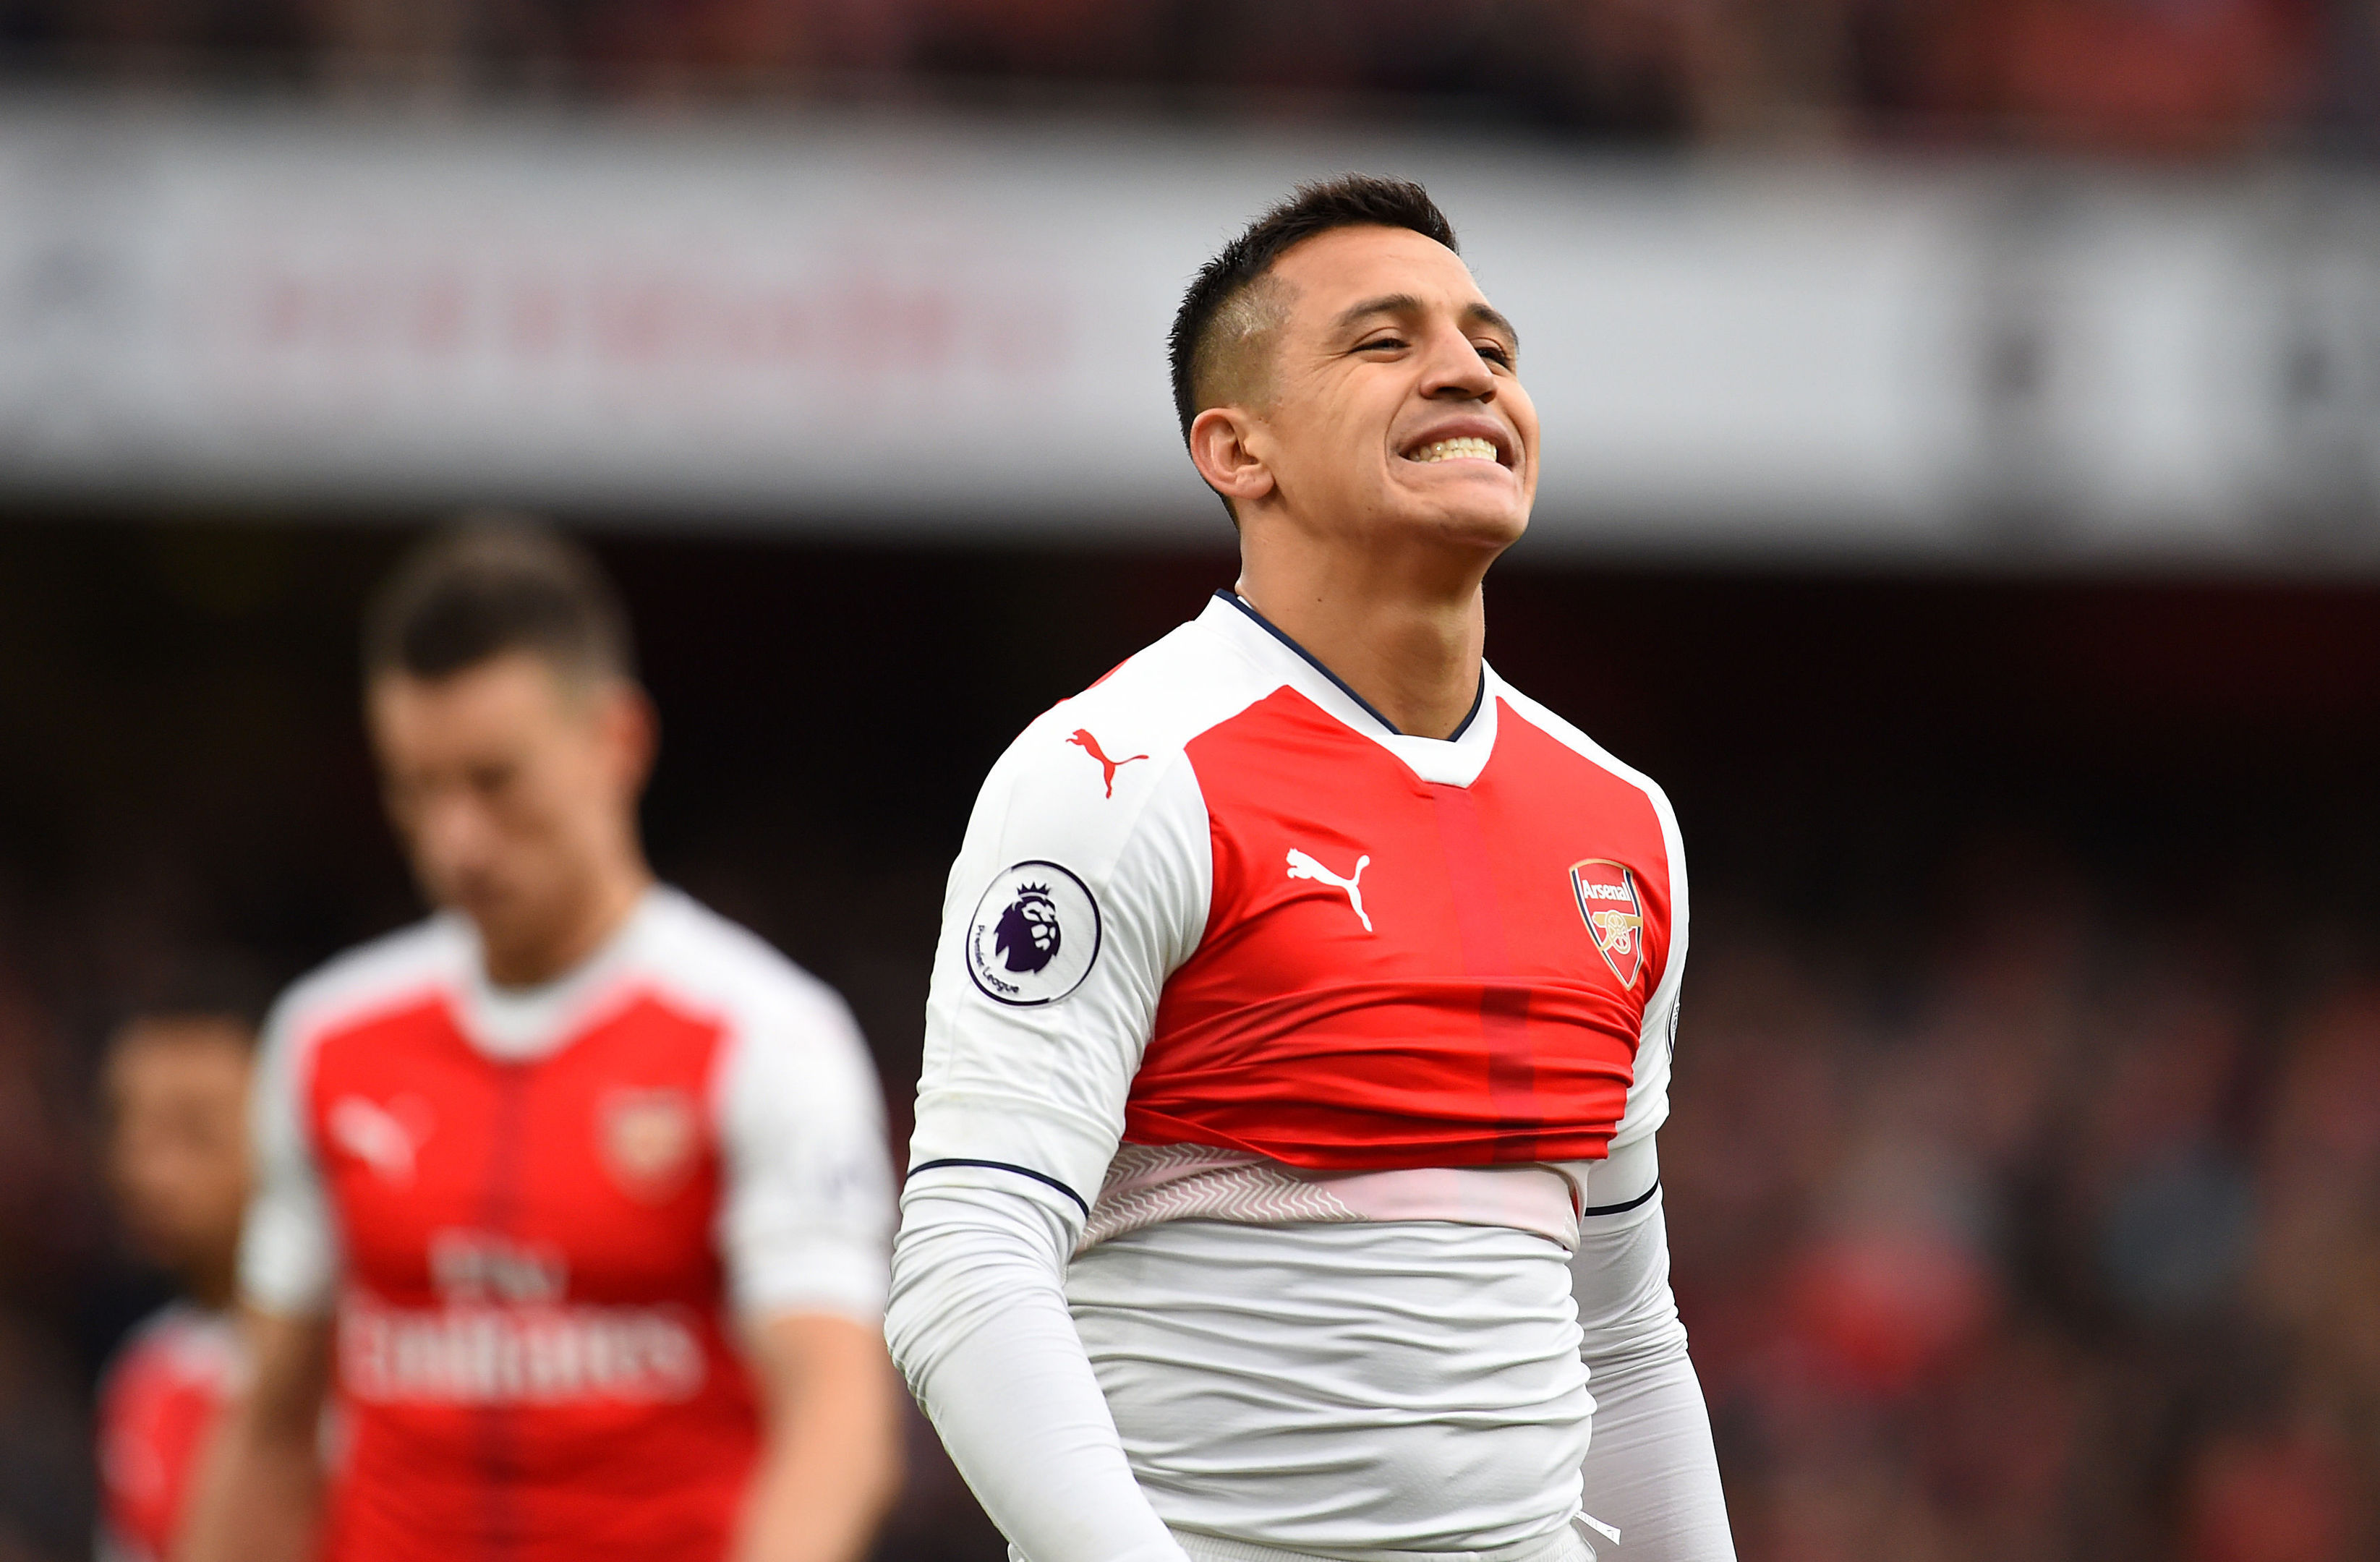 Arsenal's Alexis Sanchez (Dominic Lipinski/PA Wire)